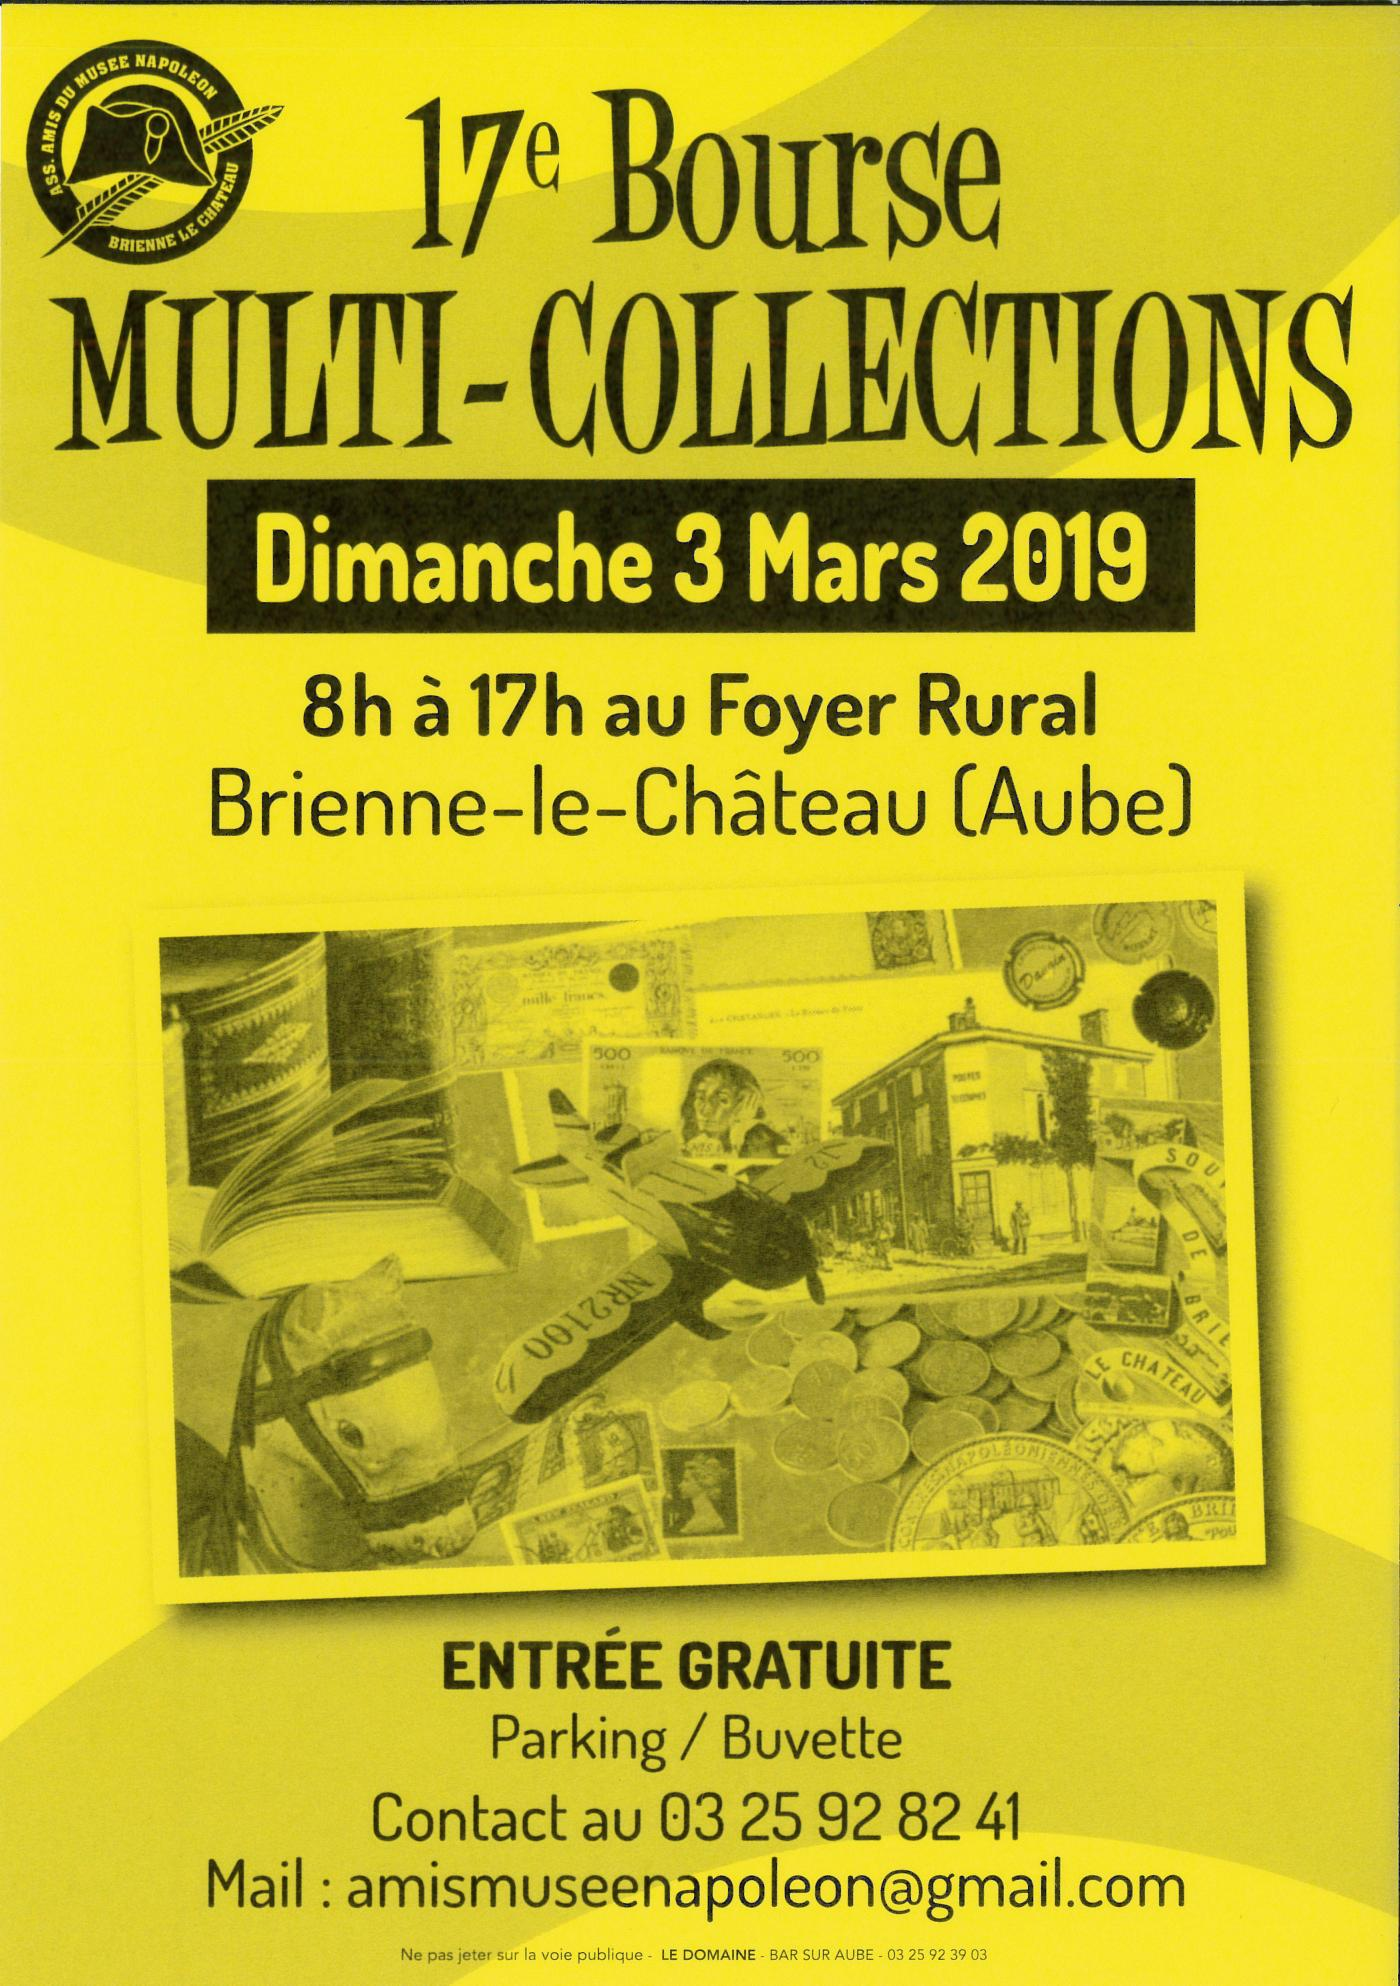 17e bourse multi-collections